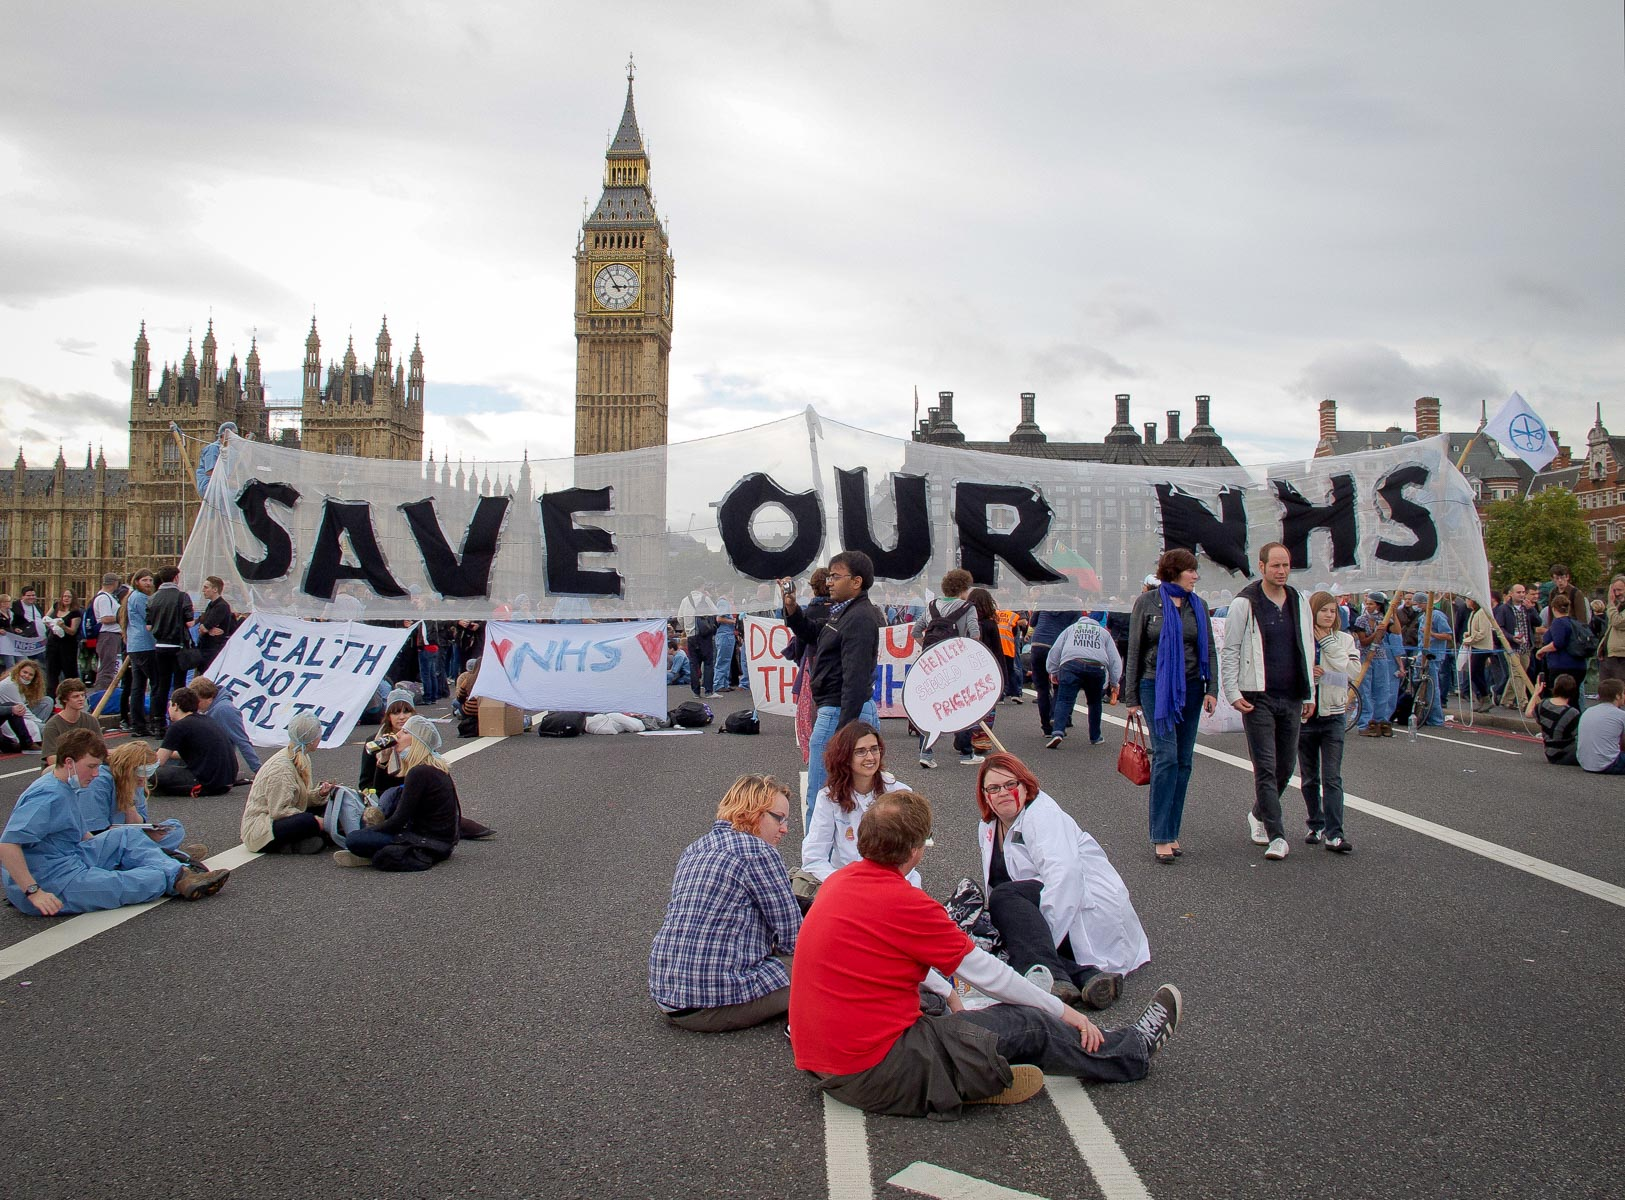 9 October 2011: Activist group UK Uncut and supporters of the National Health Service block the Westminster Bridge in protest against a bill that would make sweeping changes to the health service. It was eventually passed. (Photograph by SM Swenson/ Getty Contributor)